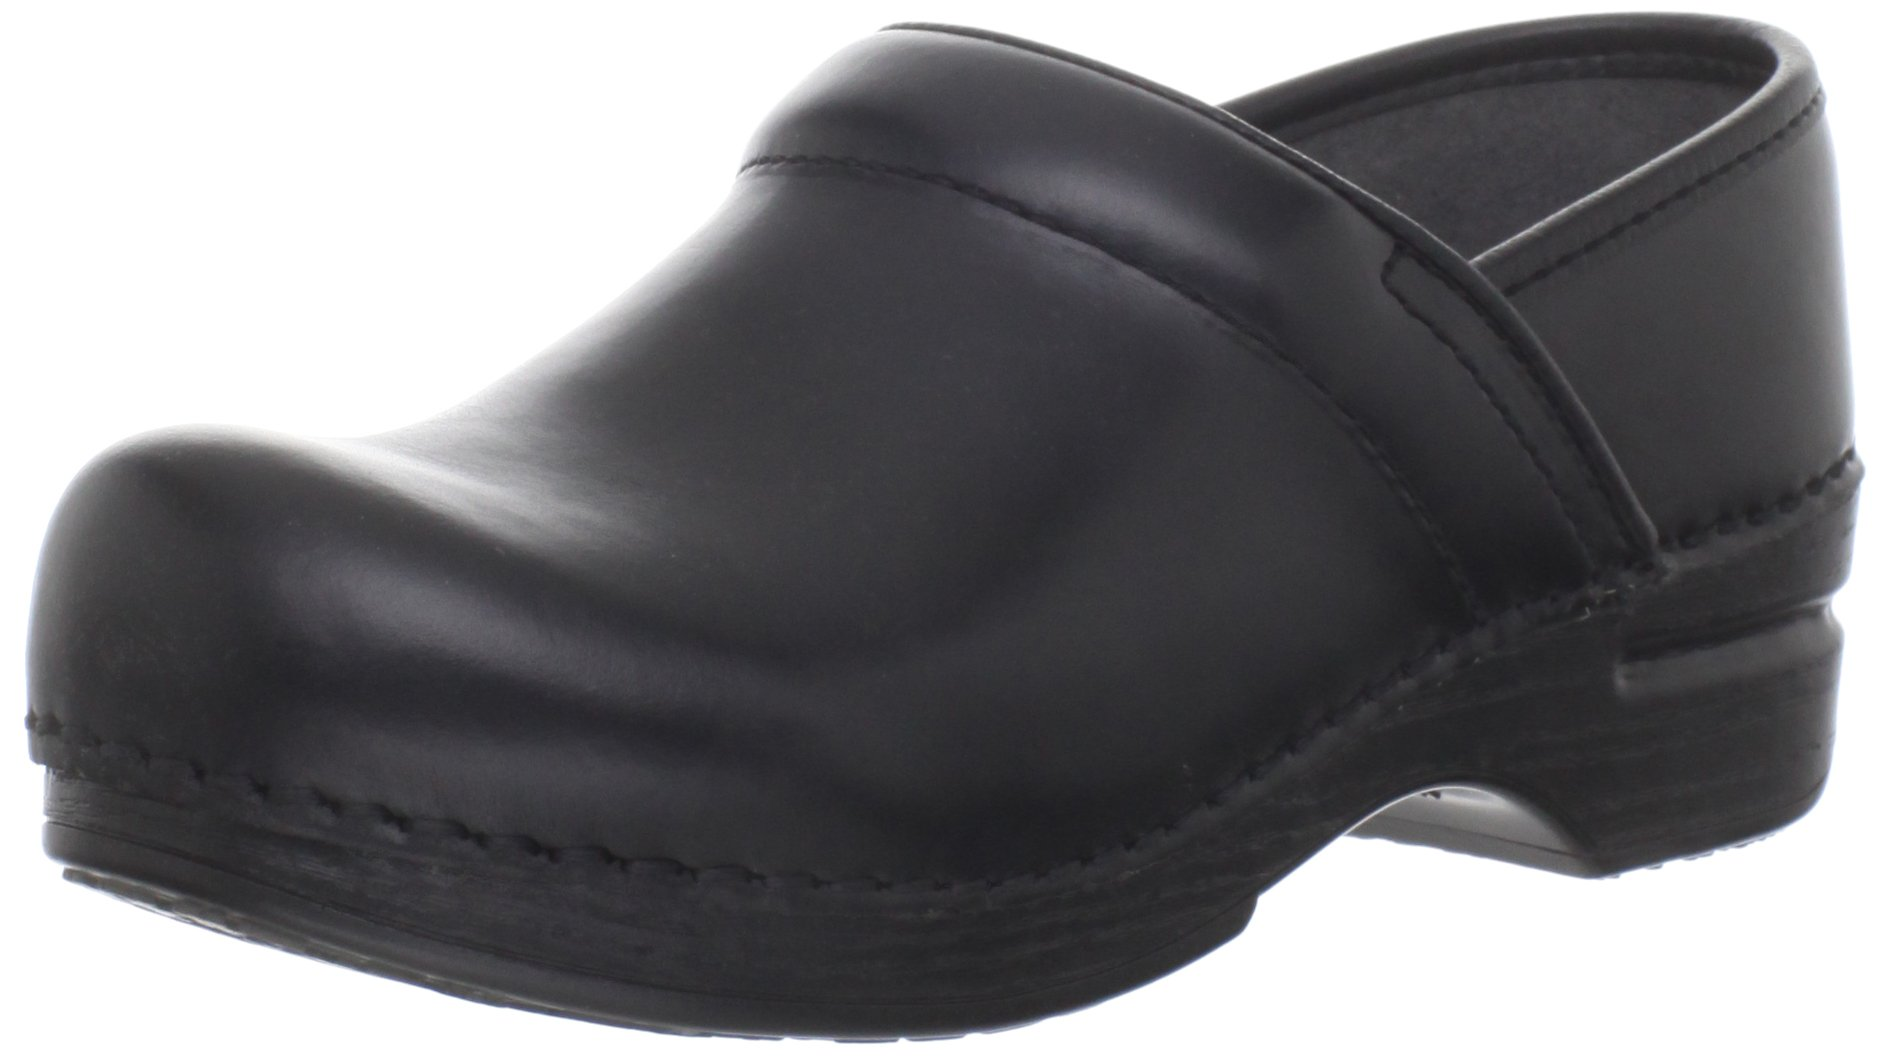 Dansko Women's Pro XP Clog,Ebony,35 EU/4.5-5 M US